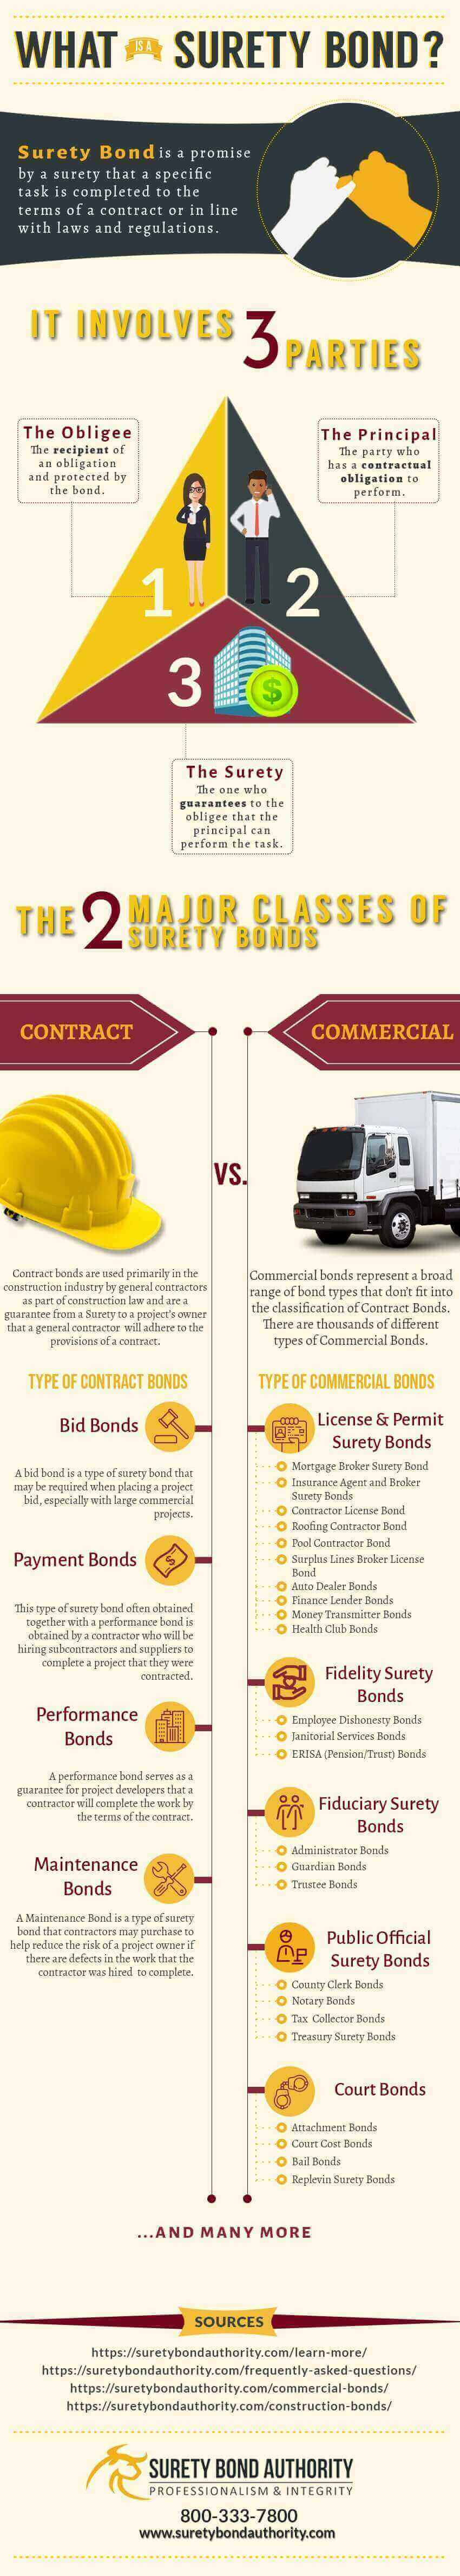 What is a Surety Bond Infographic